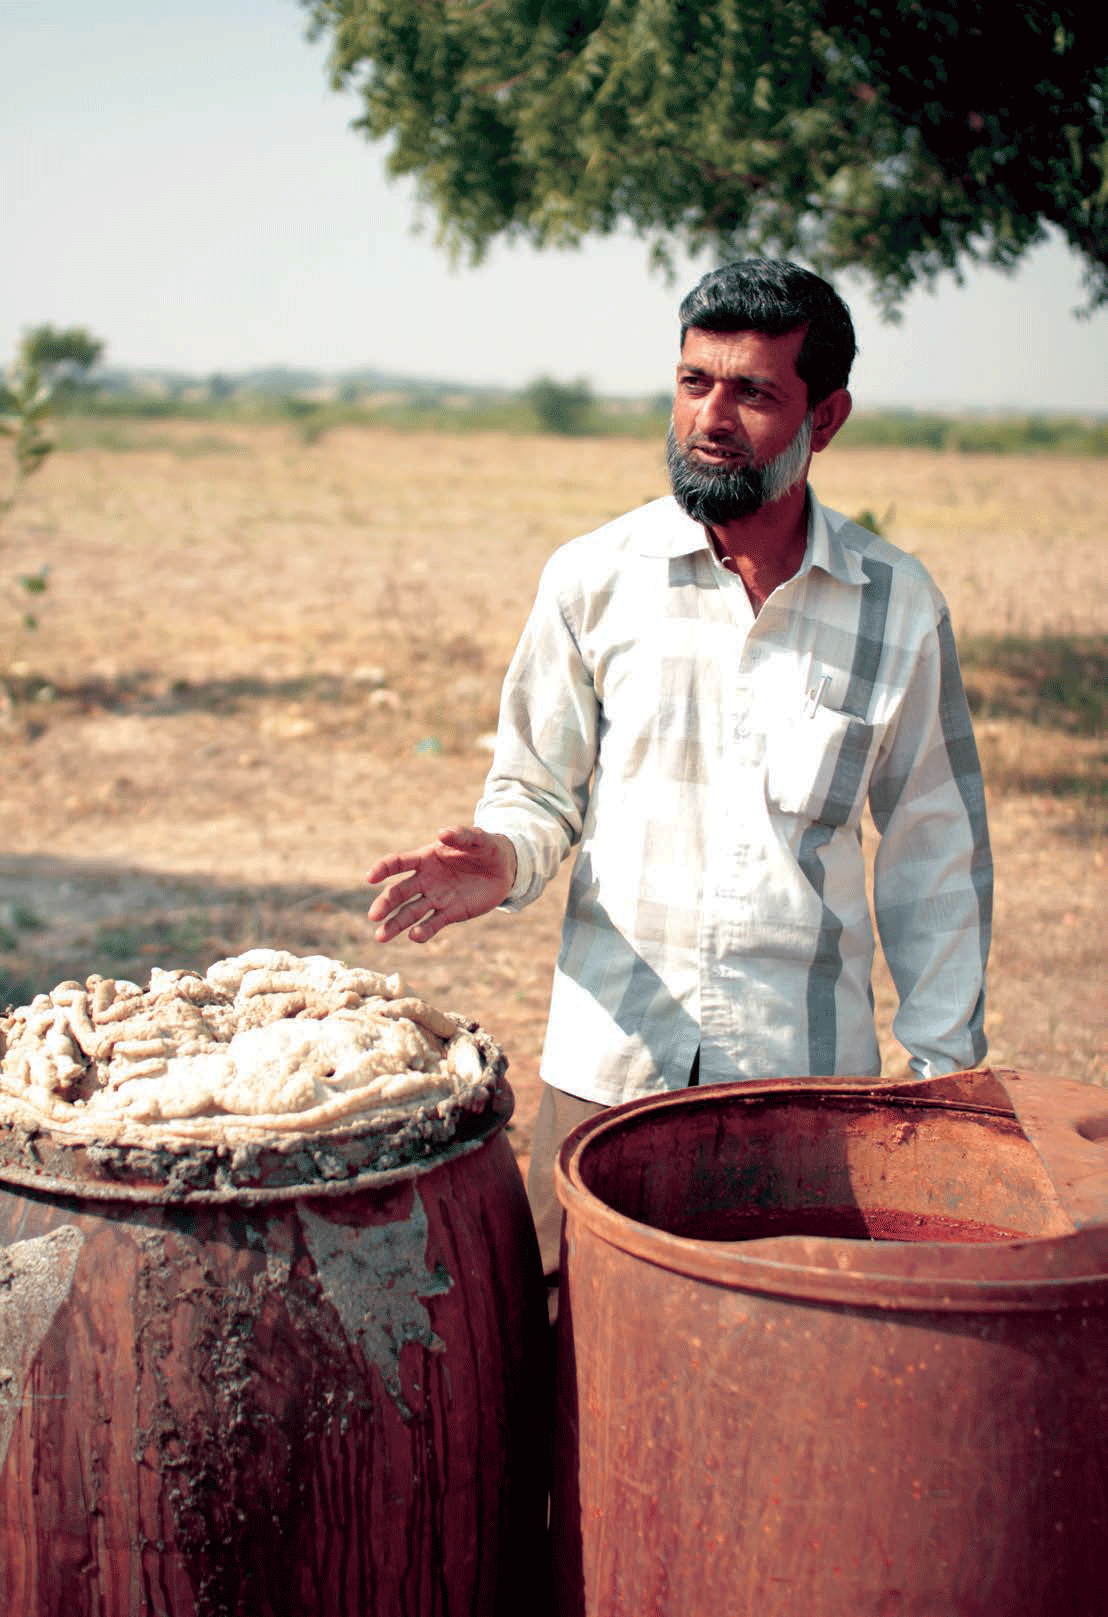 Preparation of natural dyes